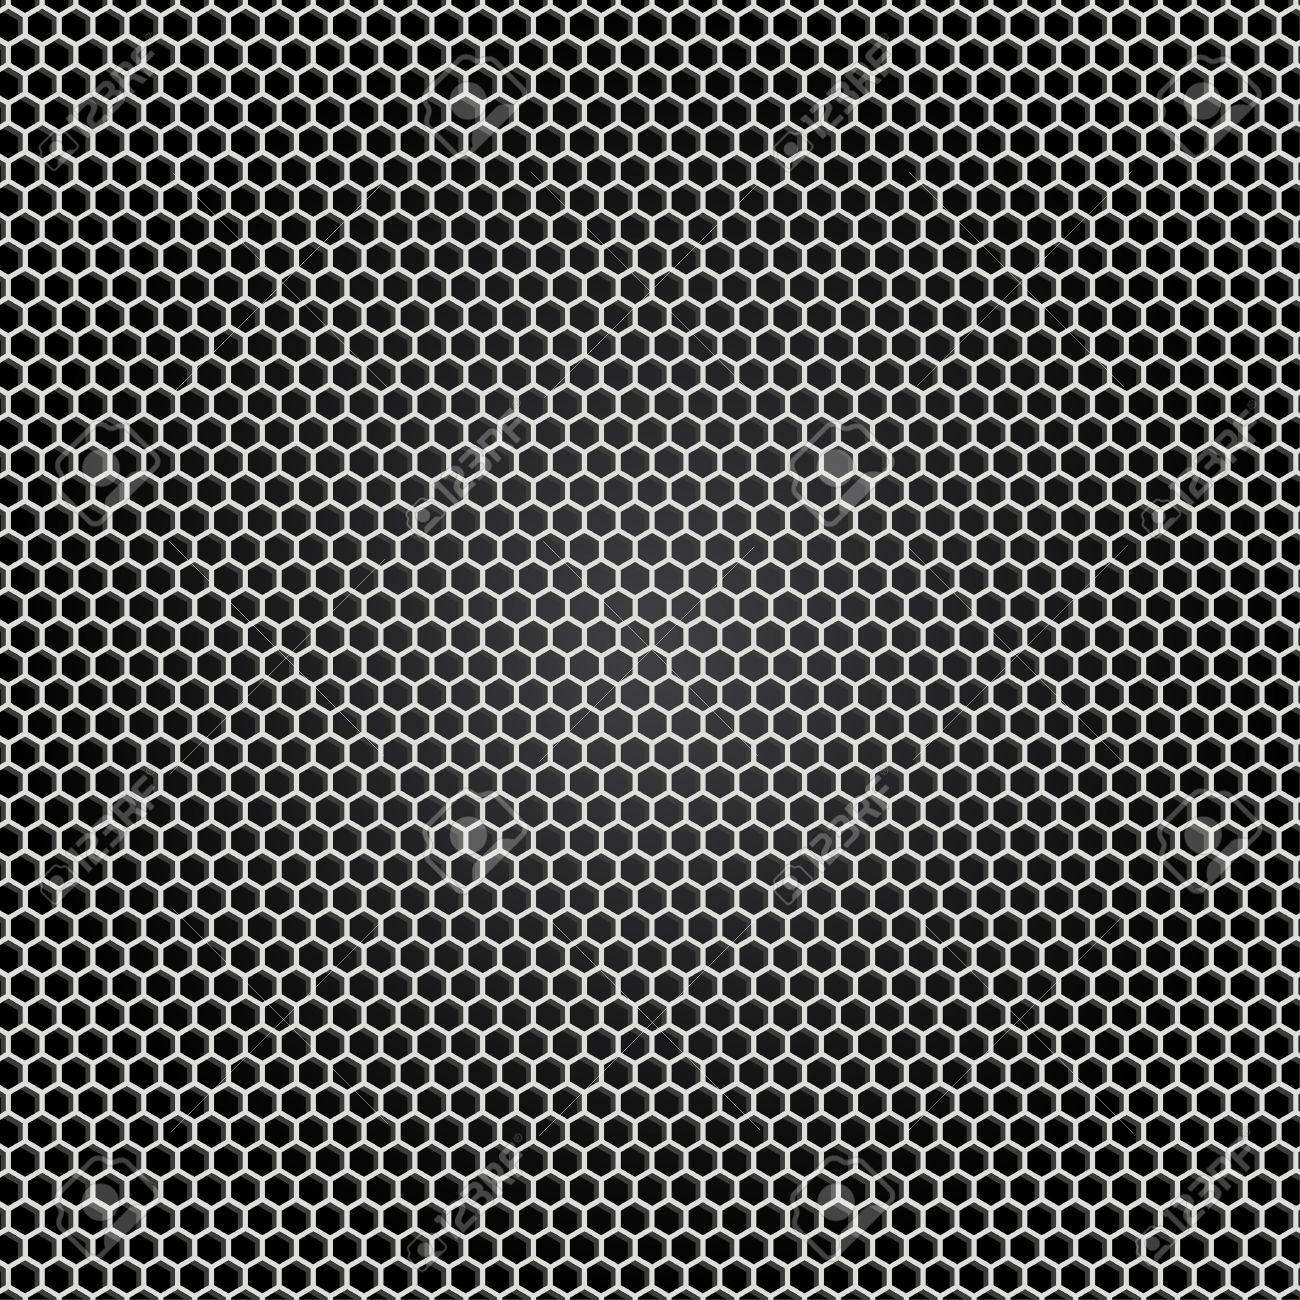 Grid Pattern Background